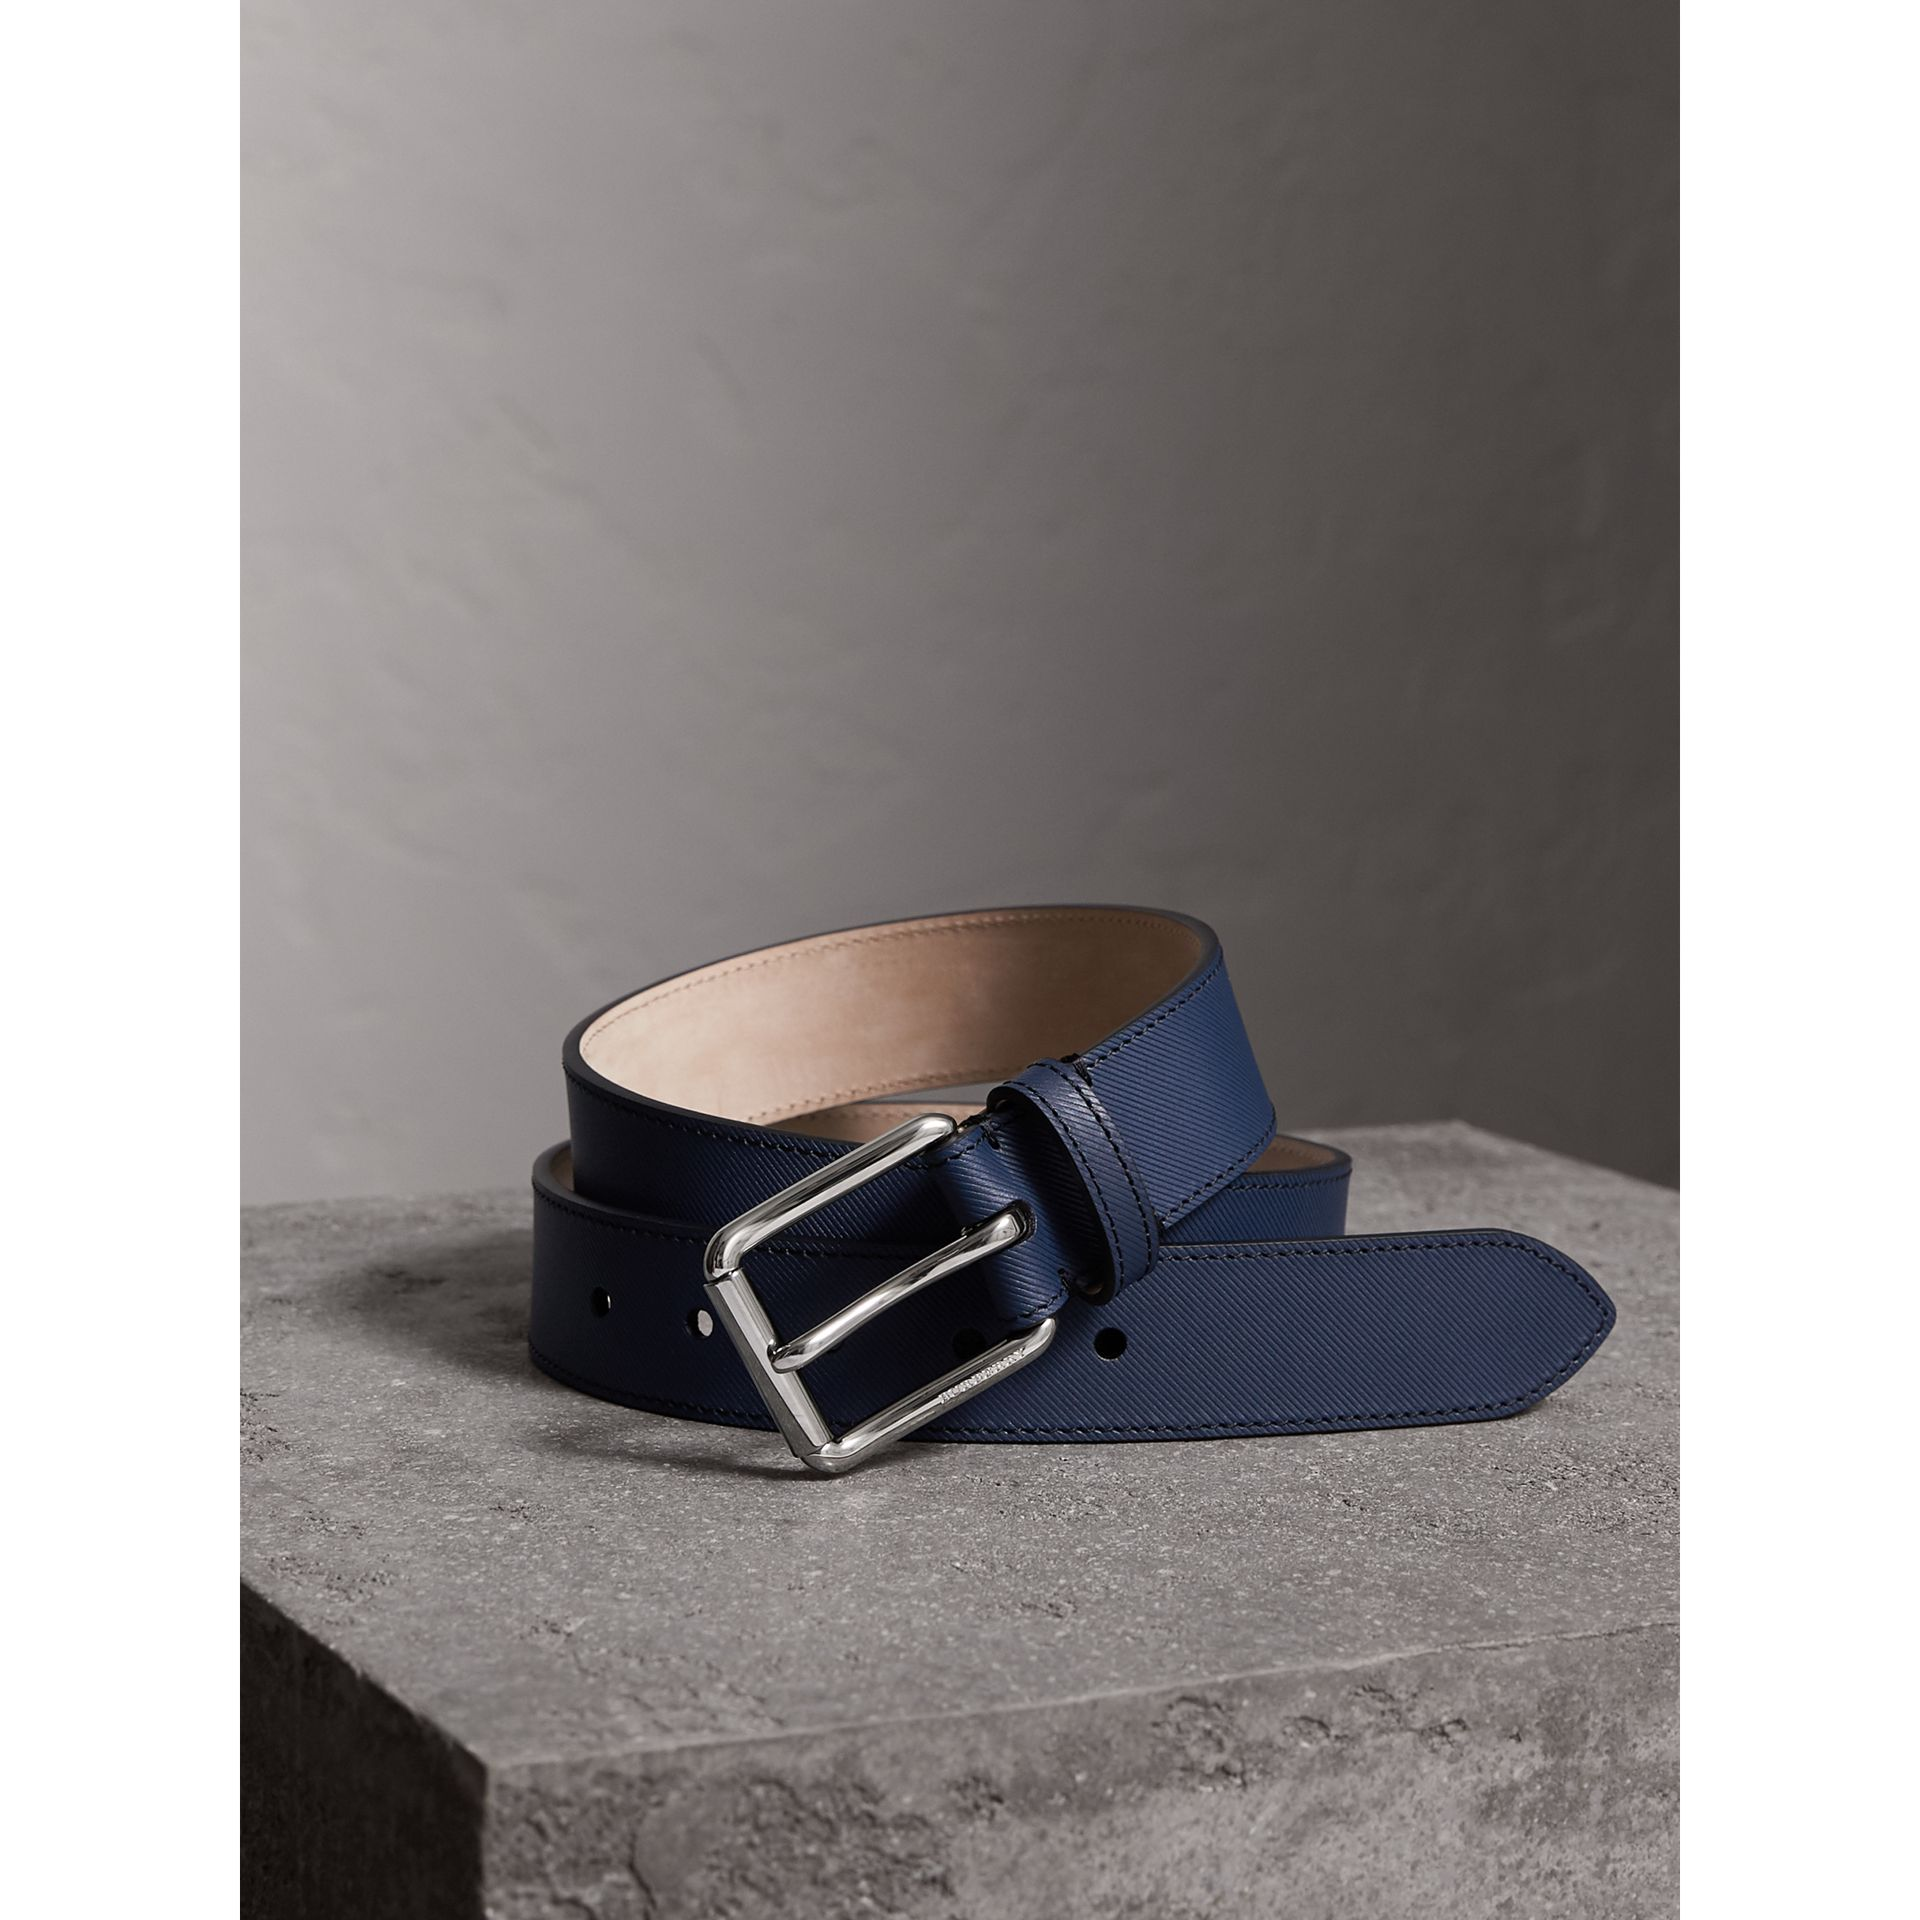 Burberry Ink Blue Trench Leather Belt